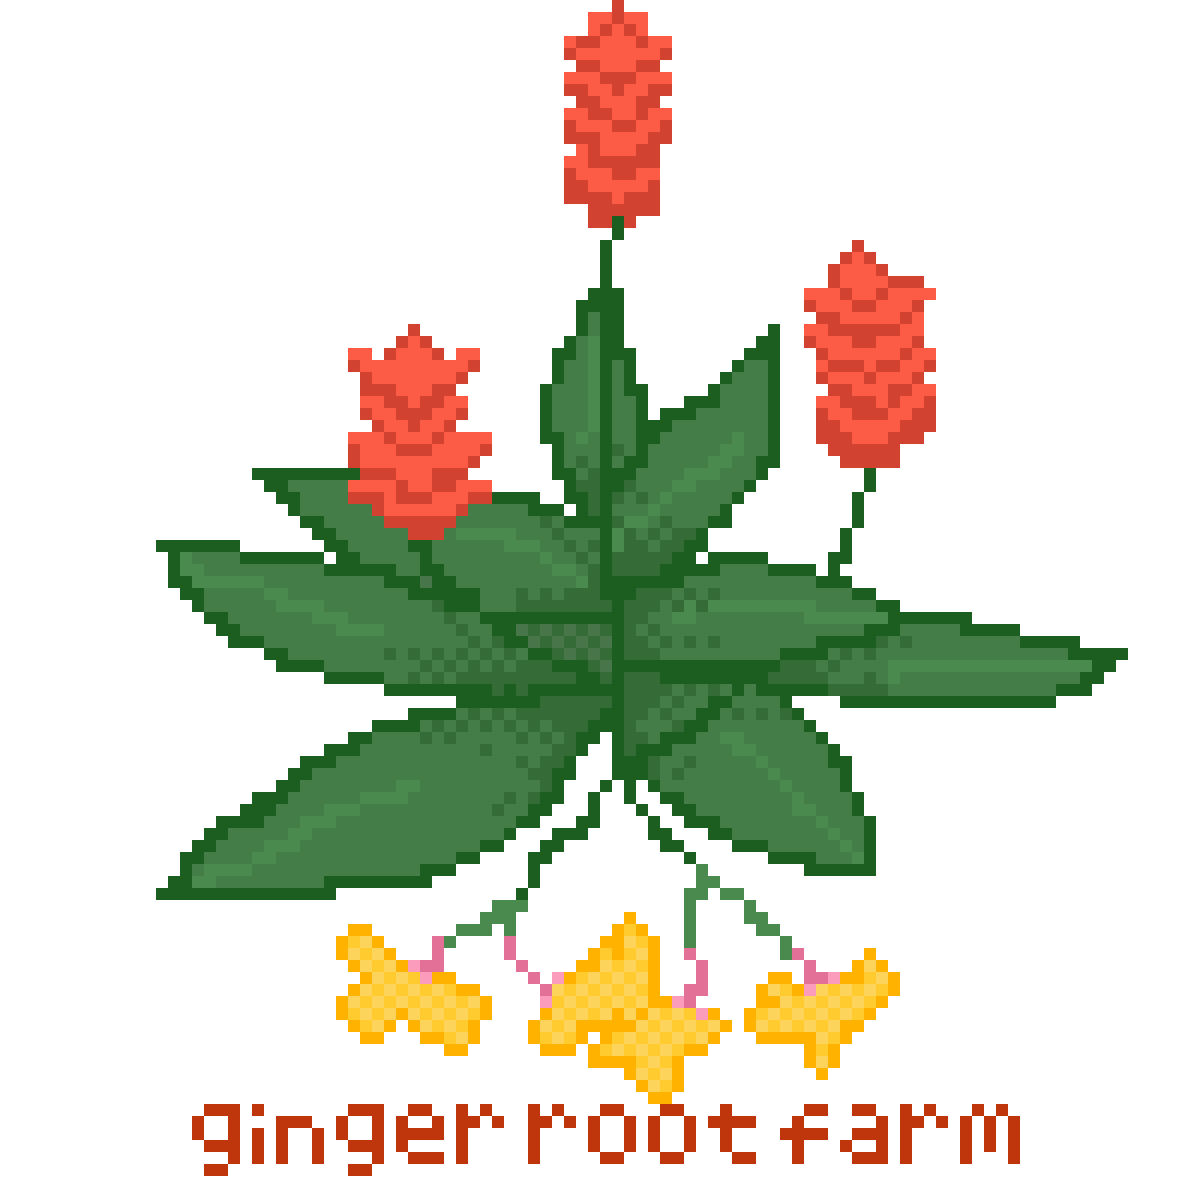 main-image-ginger root farm logo  by gingerrroot